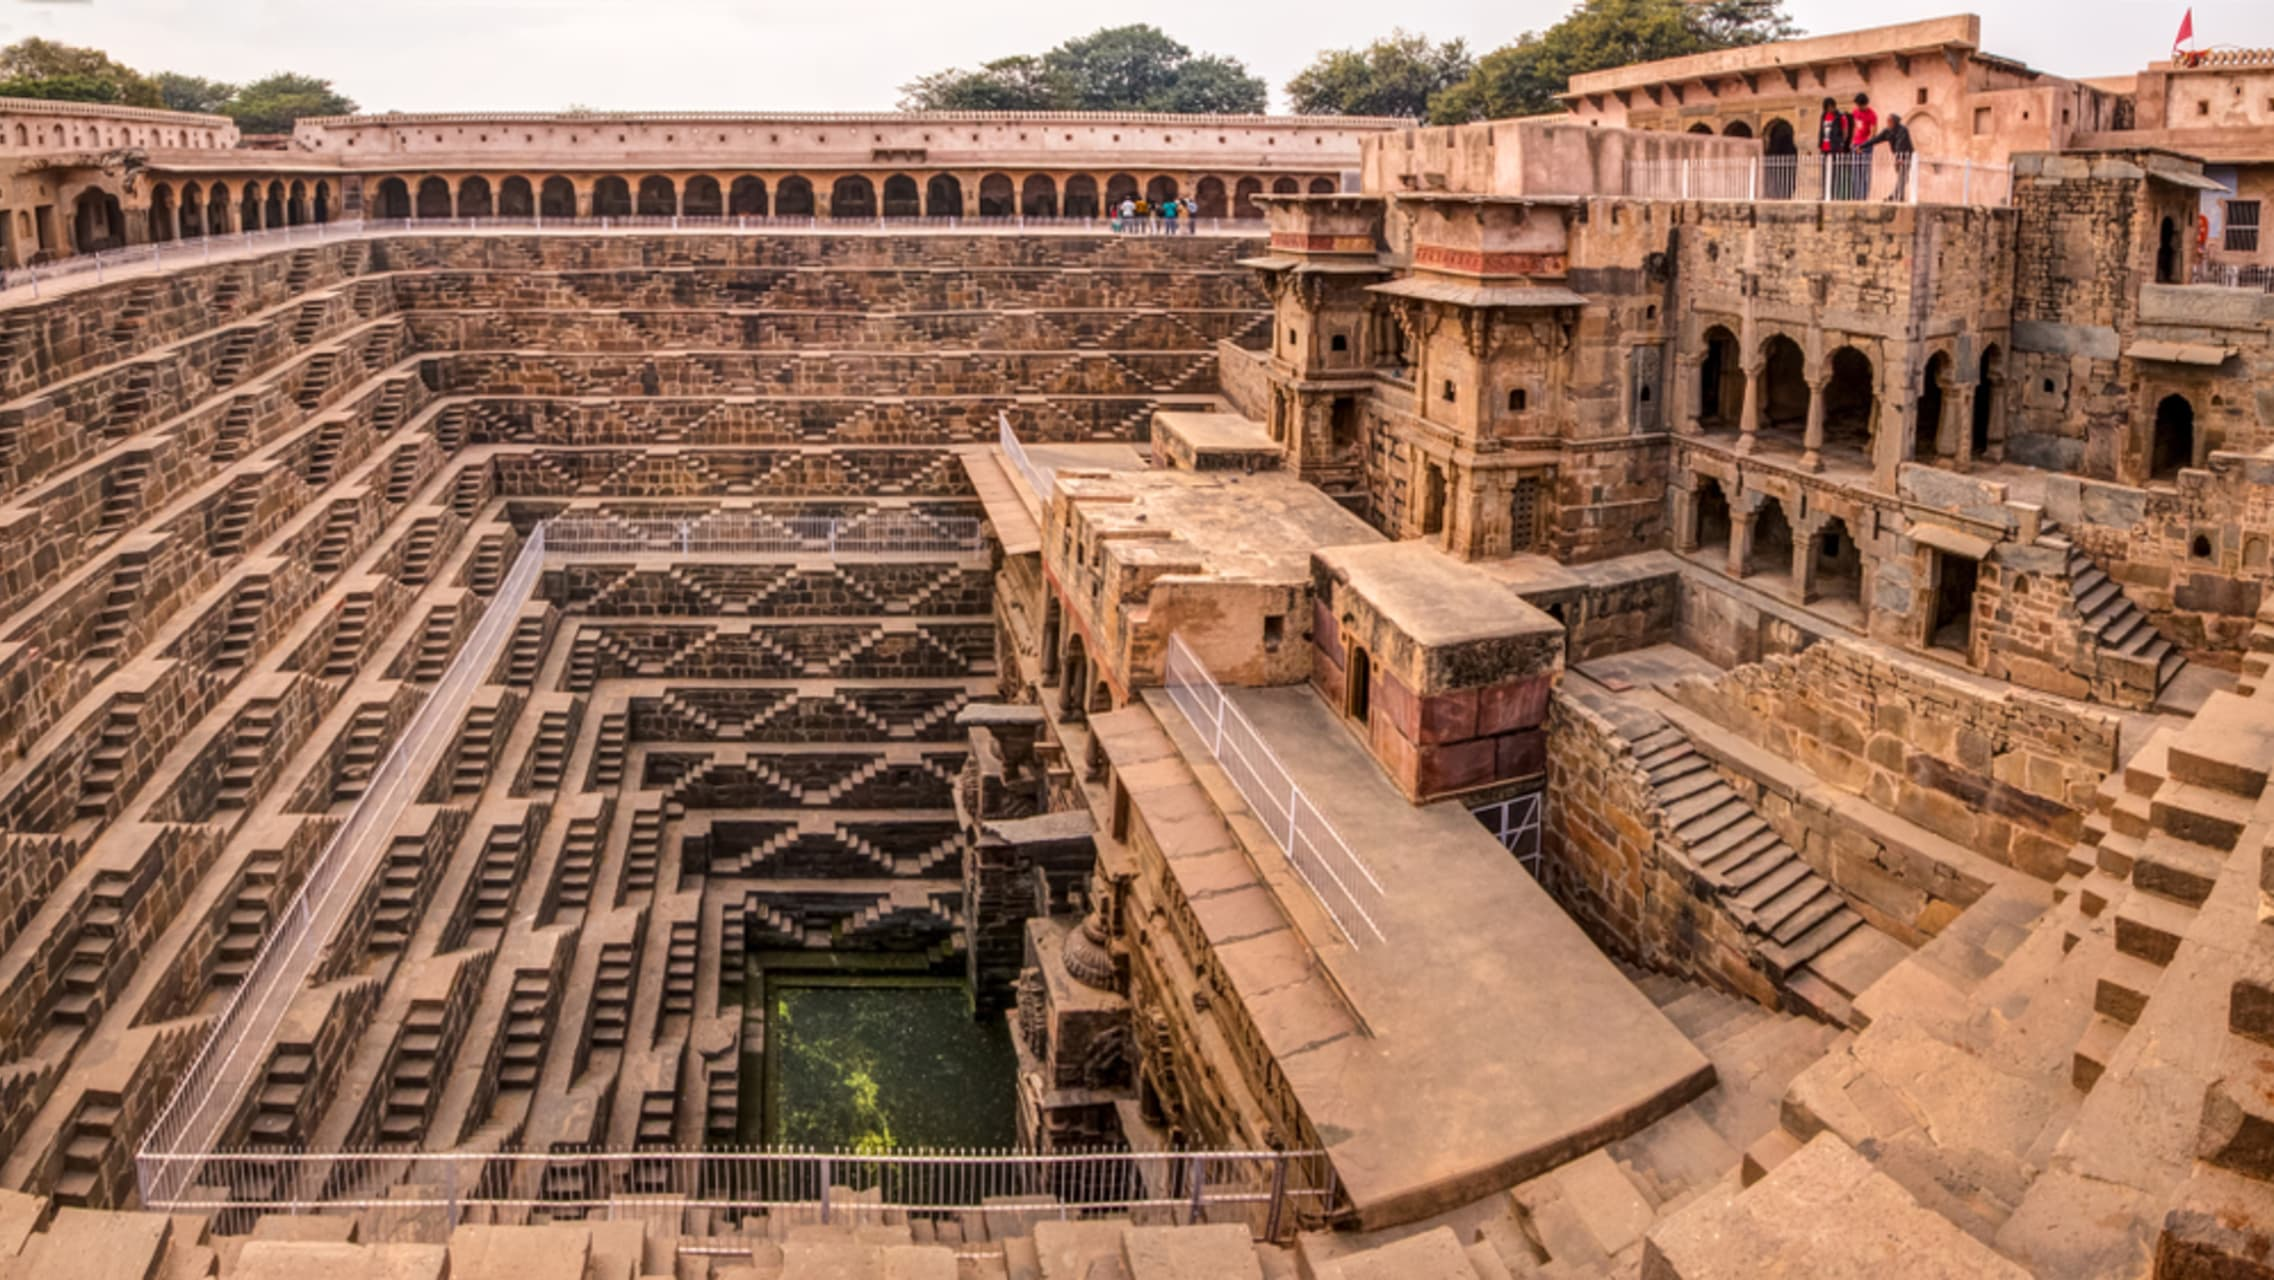 Jaipur - Chand Baori - The Ancient Temple and Step well of India